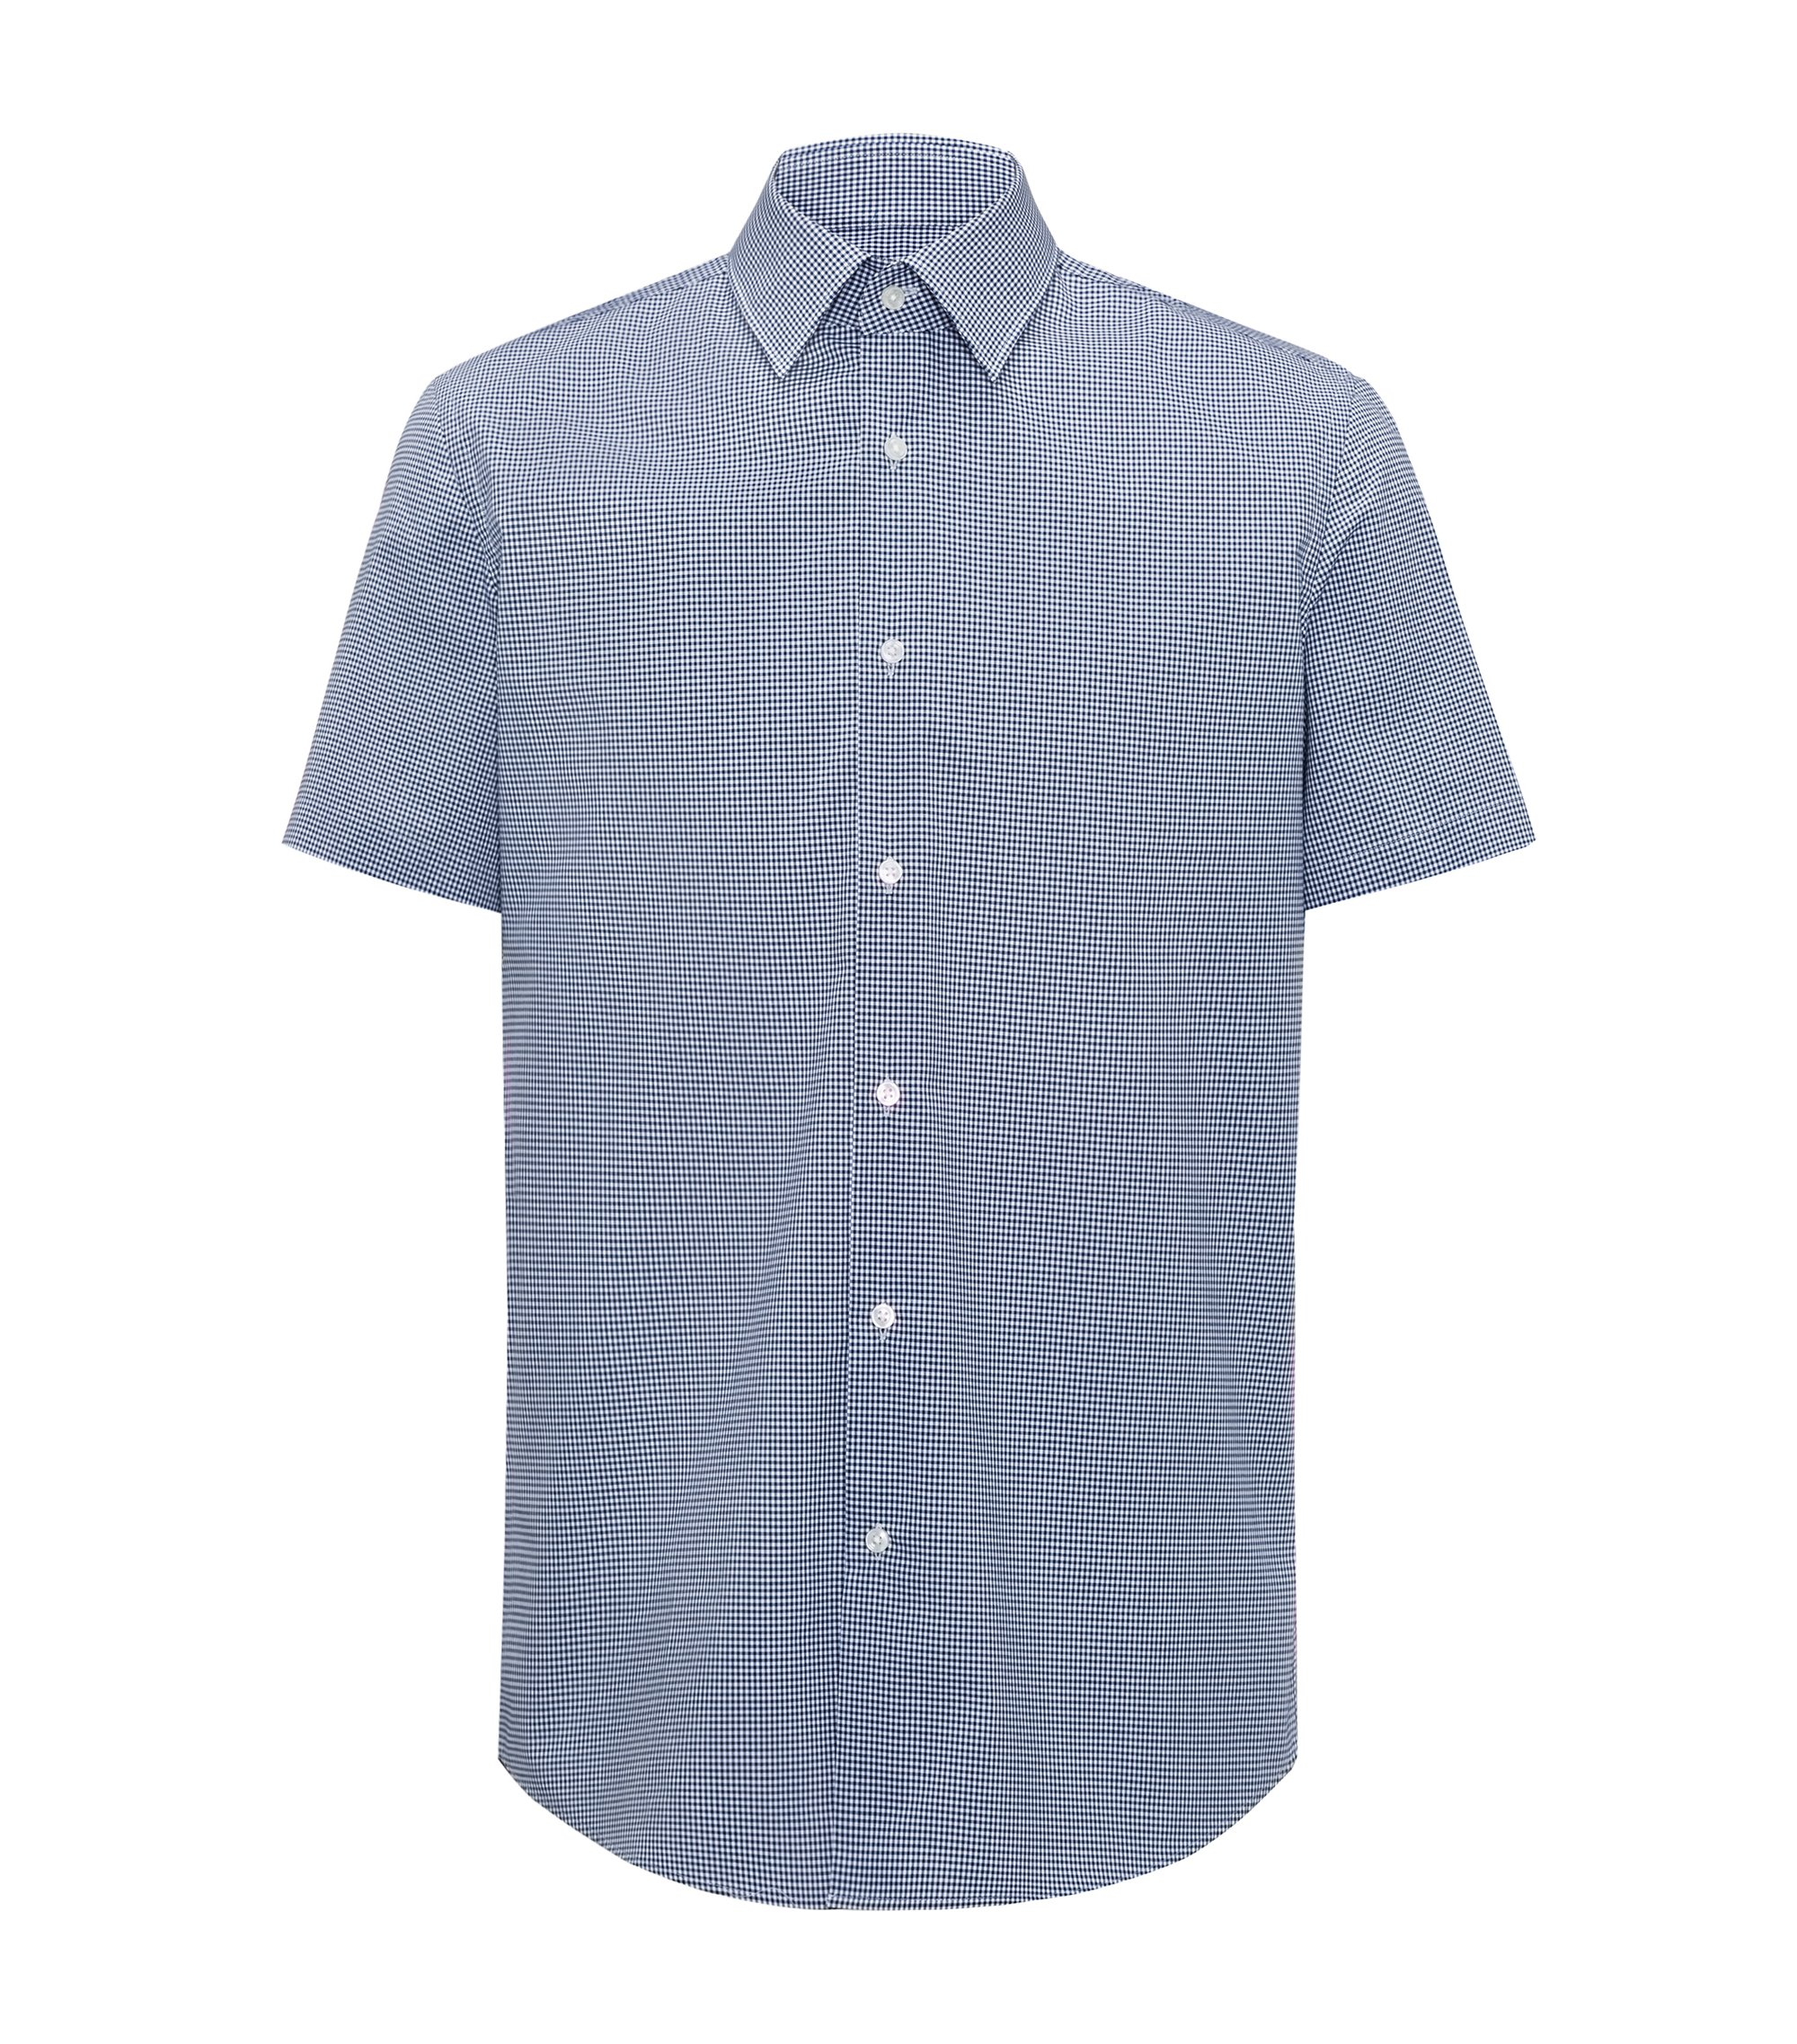 Camicia a maniche corte regular fit in cotone a quadri facile da stirare, Blu scuro